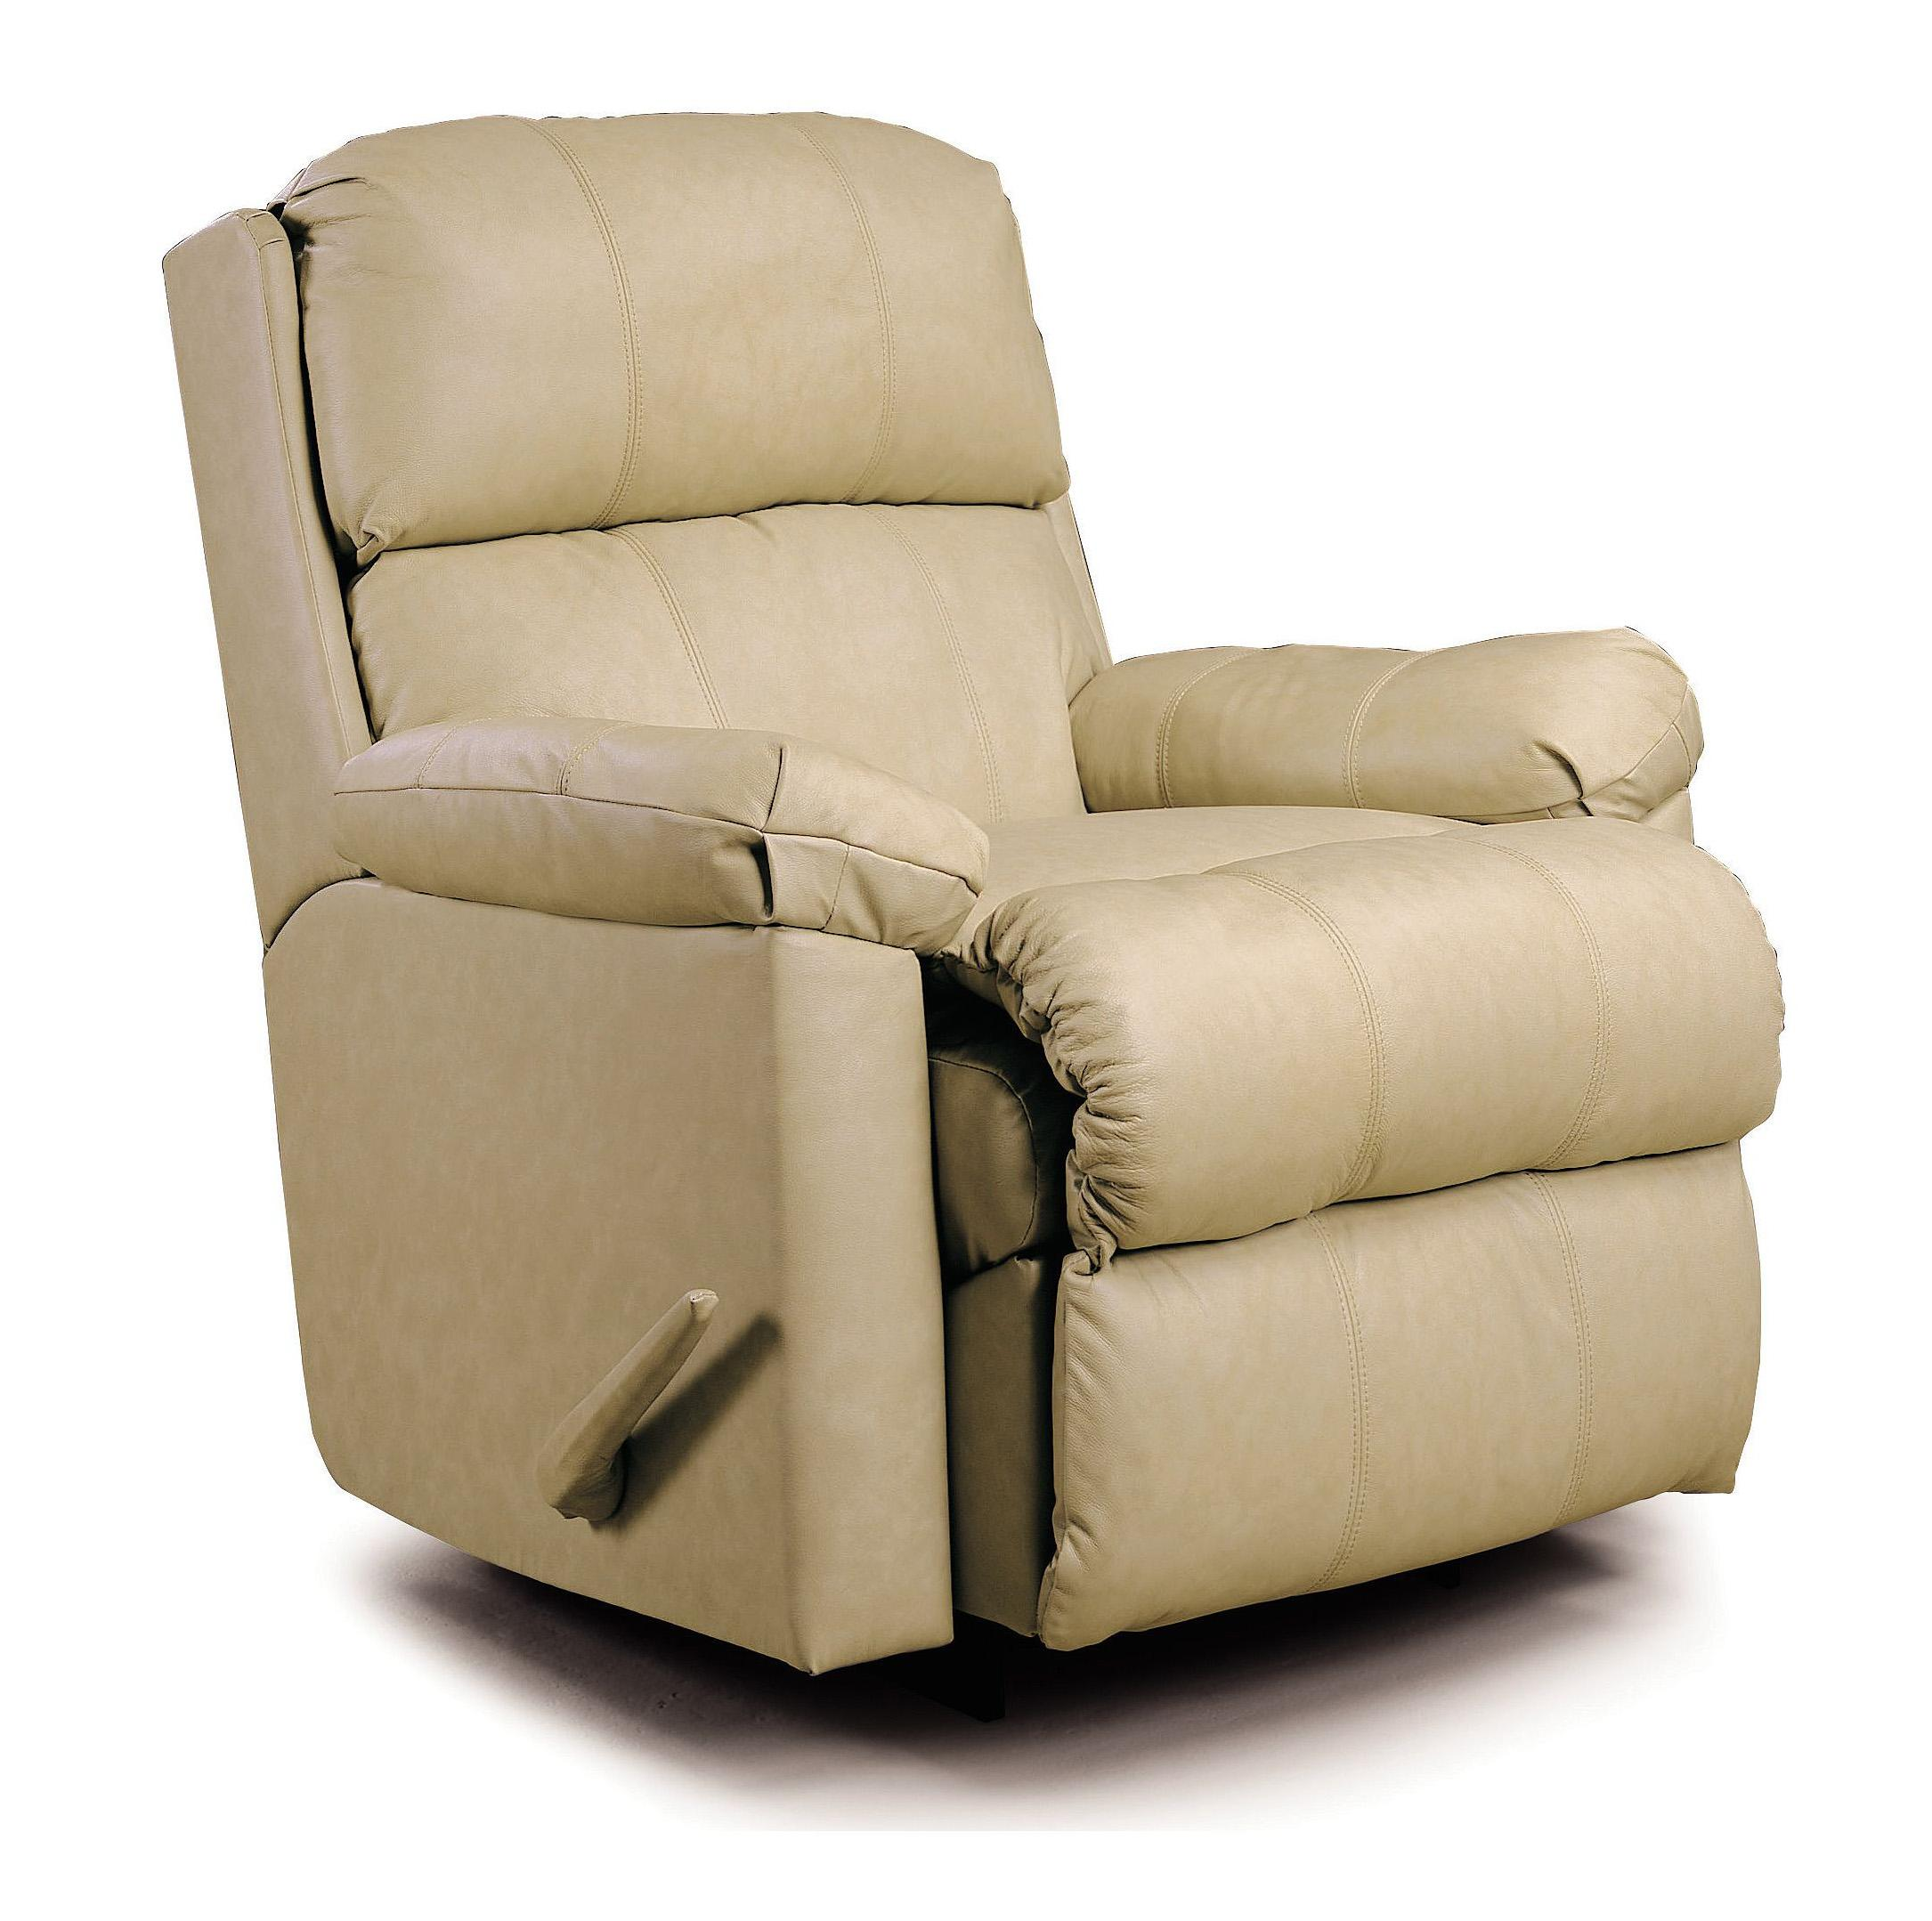 2017 Leather Recliner Chair,Cheap Sofas,Cheap Sofa,Cheap